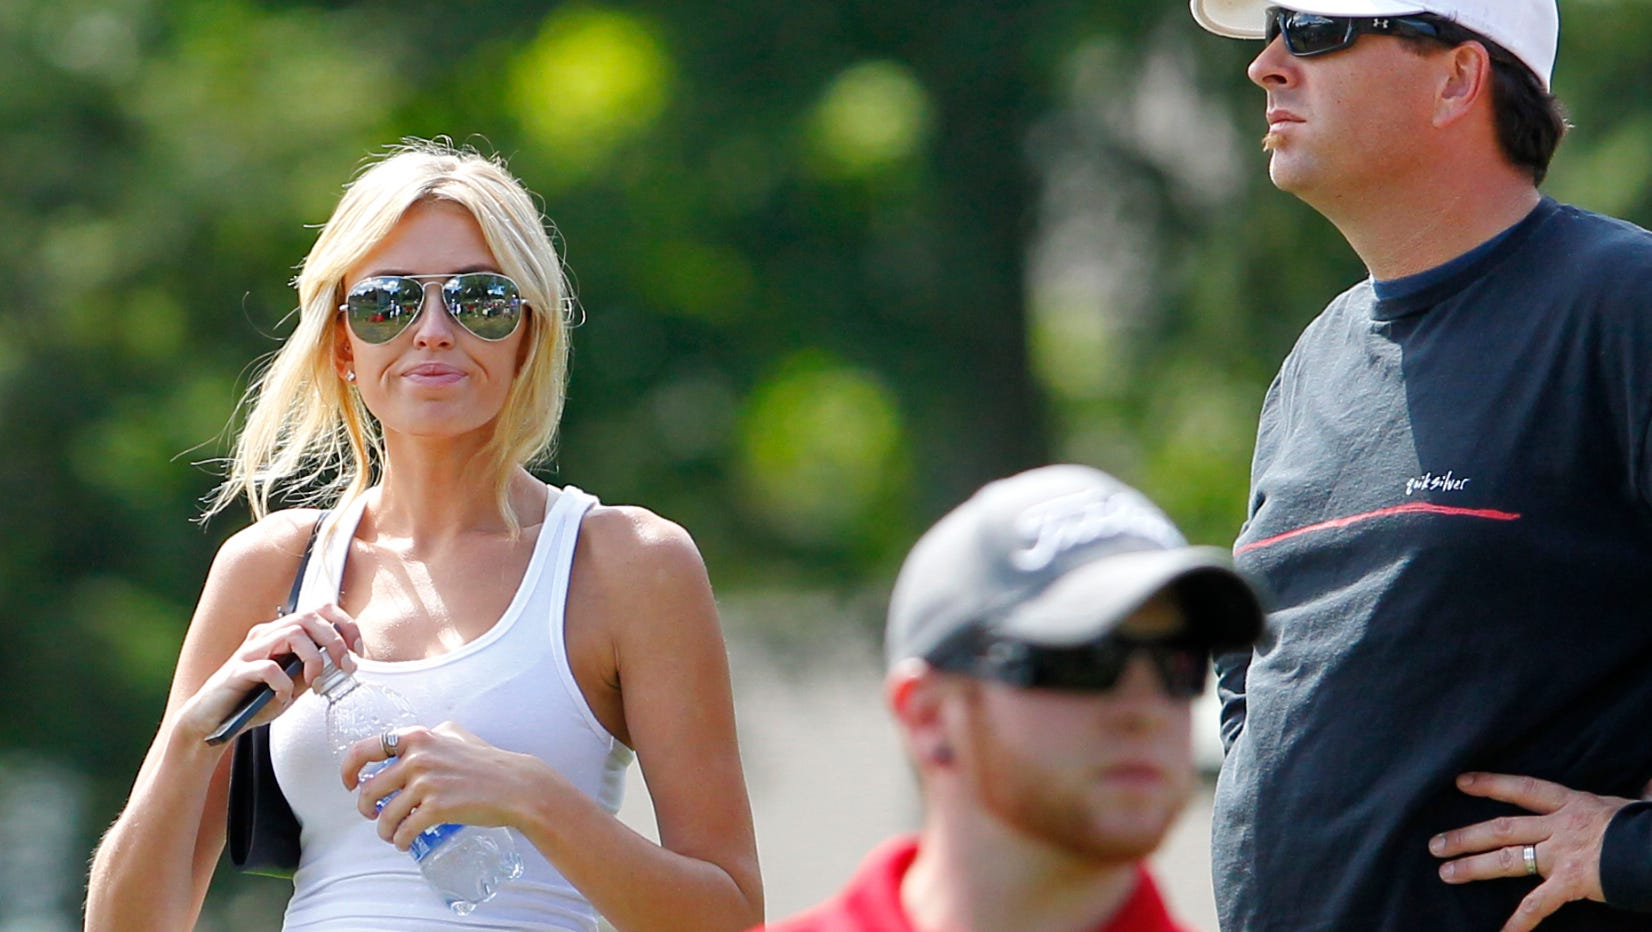 Paulina Gretzky watches Dustin Johnson during the final round of the 95th PGA Championship at Oak Hill in Pittsford, NY August 11, 2013.